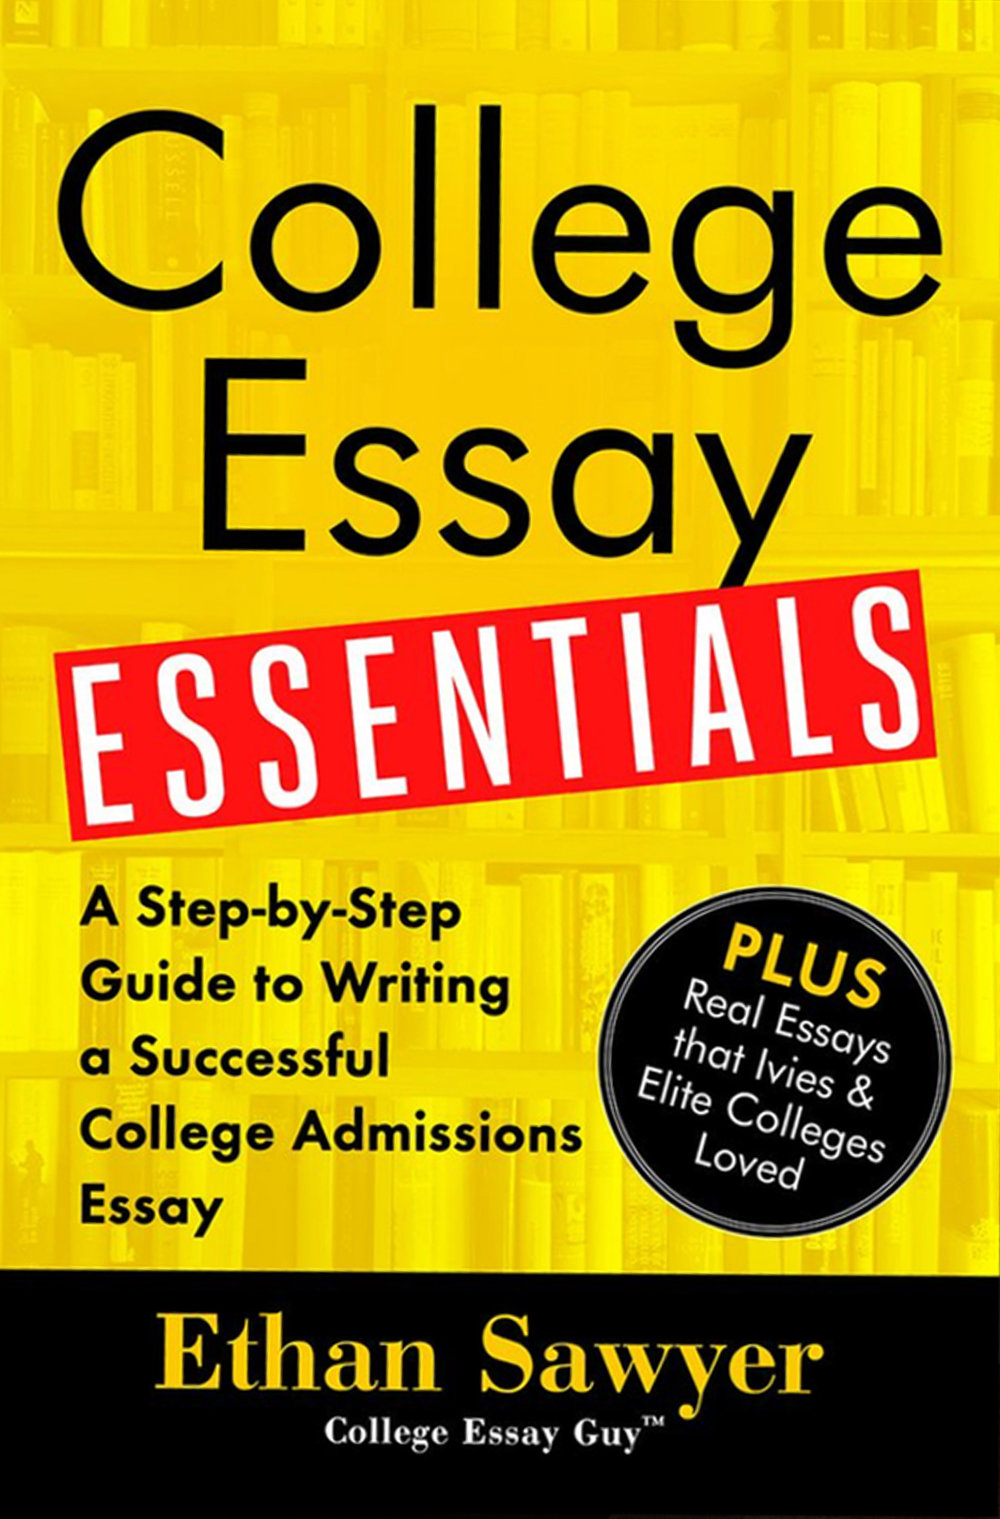 the why did the chicken cross the road essay college essay guy order the new book college essay essentials